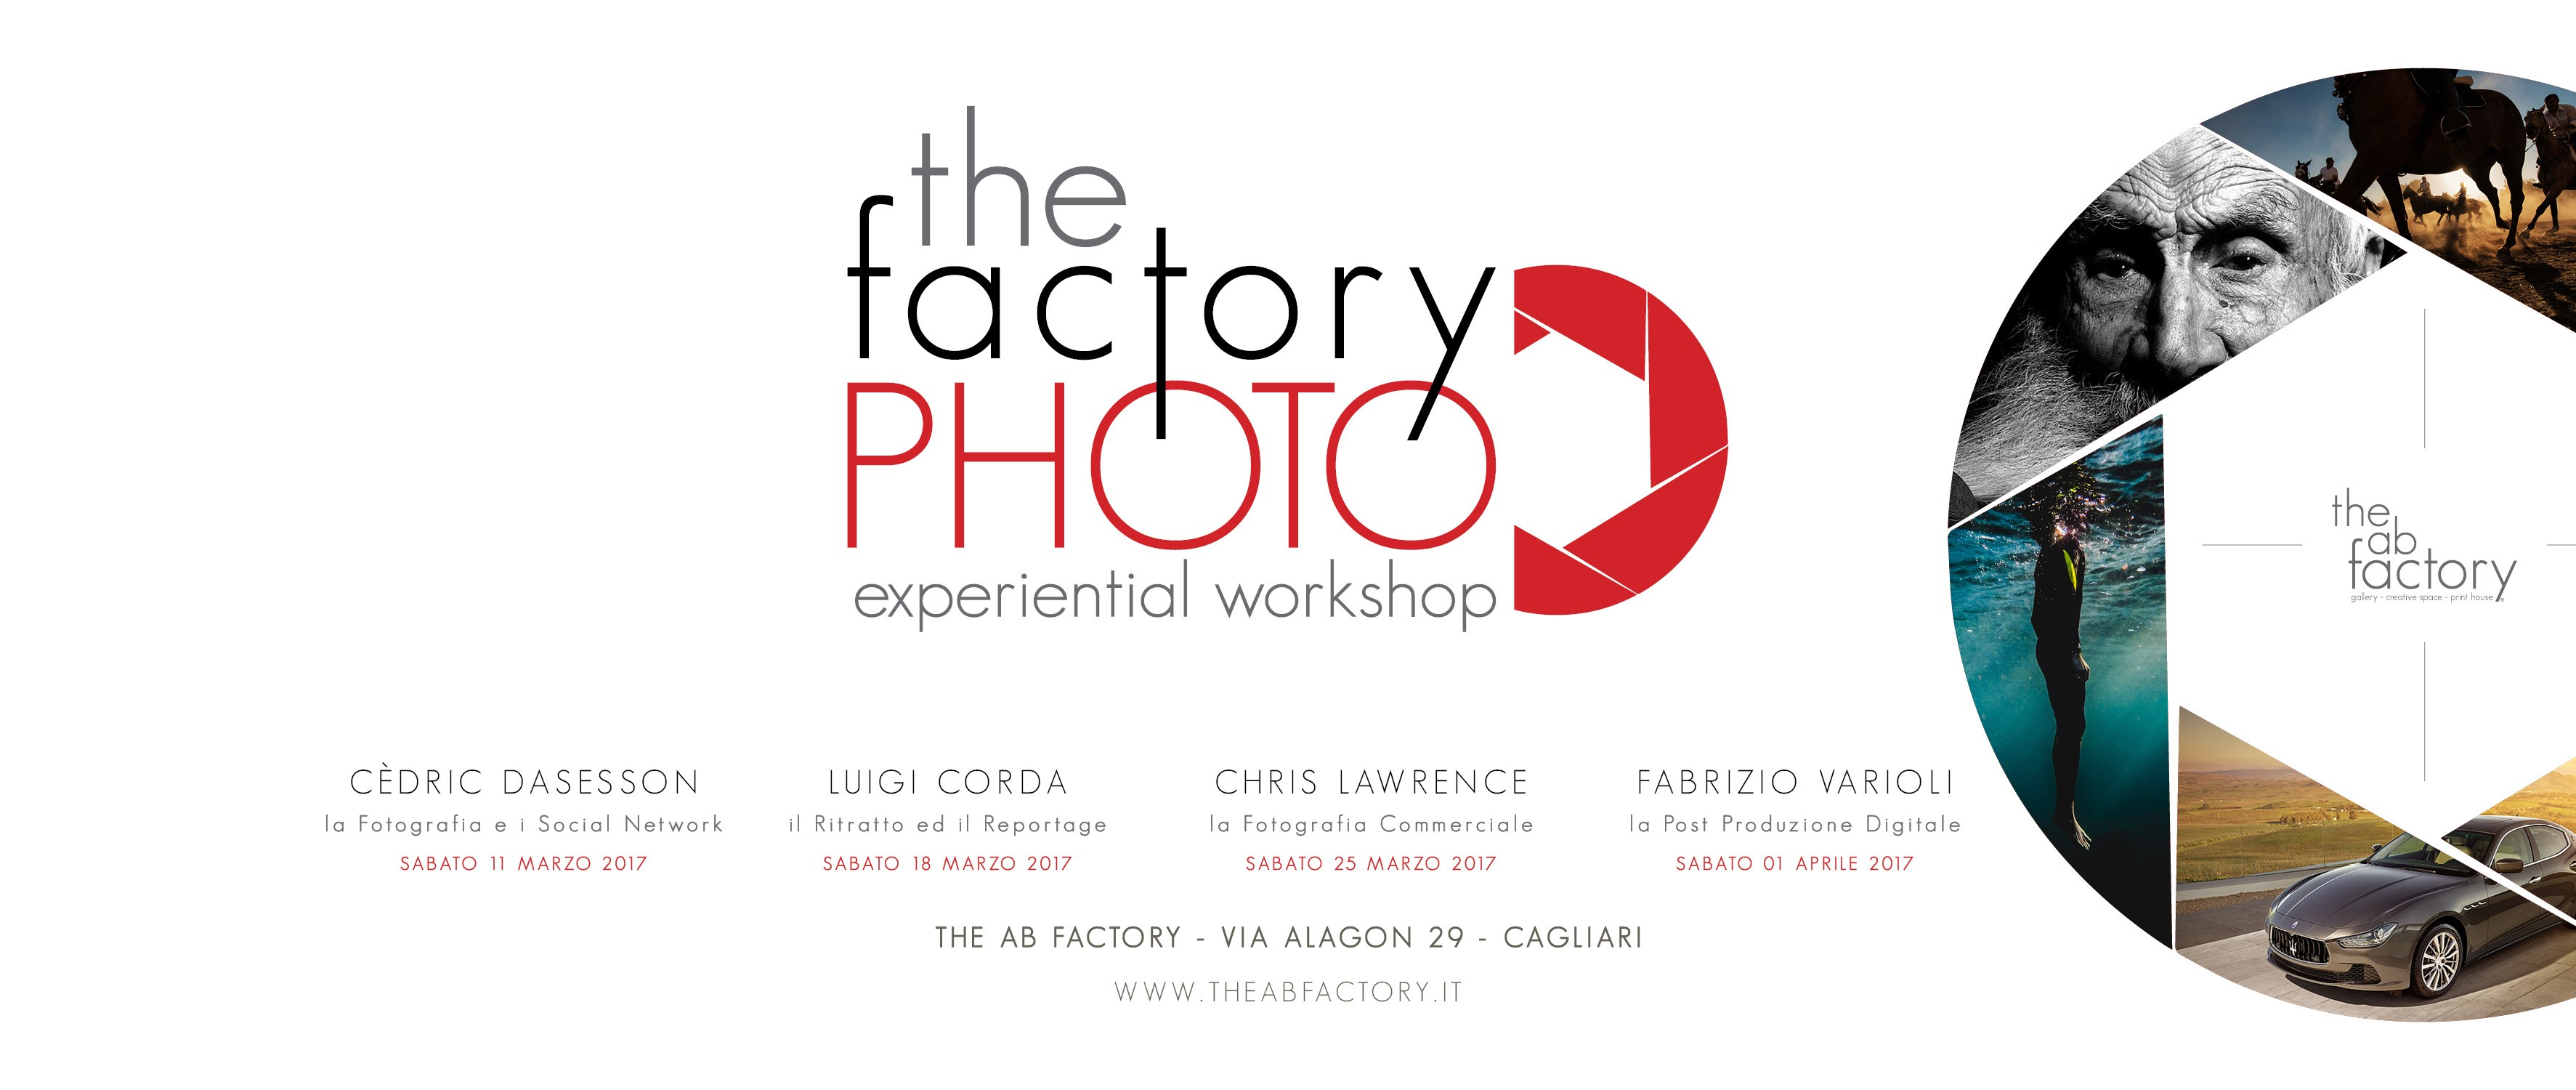 the factory photo